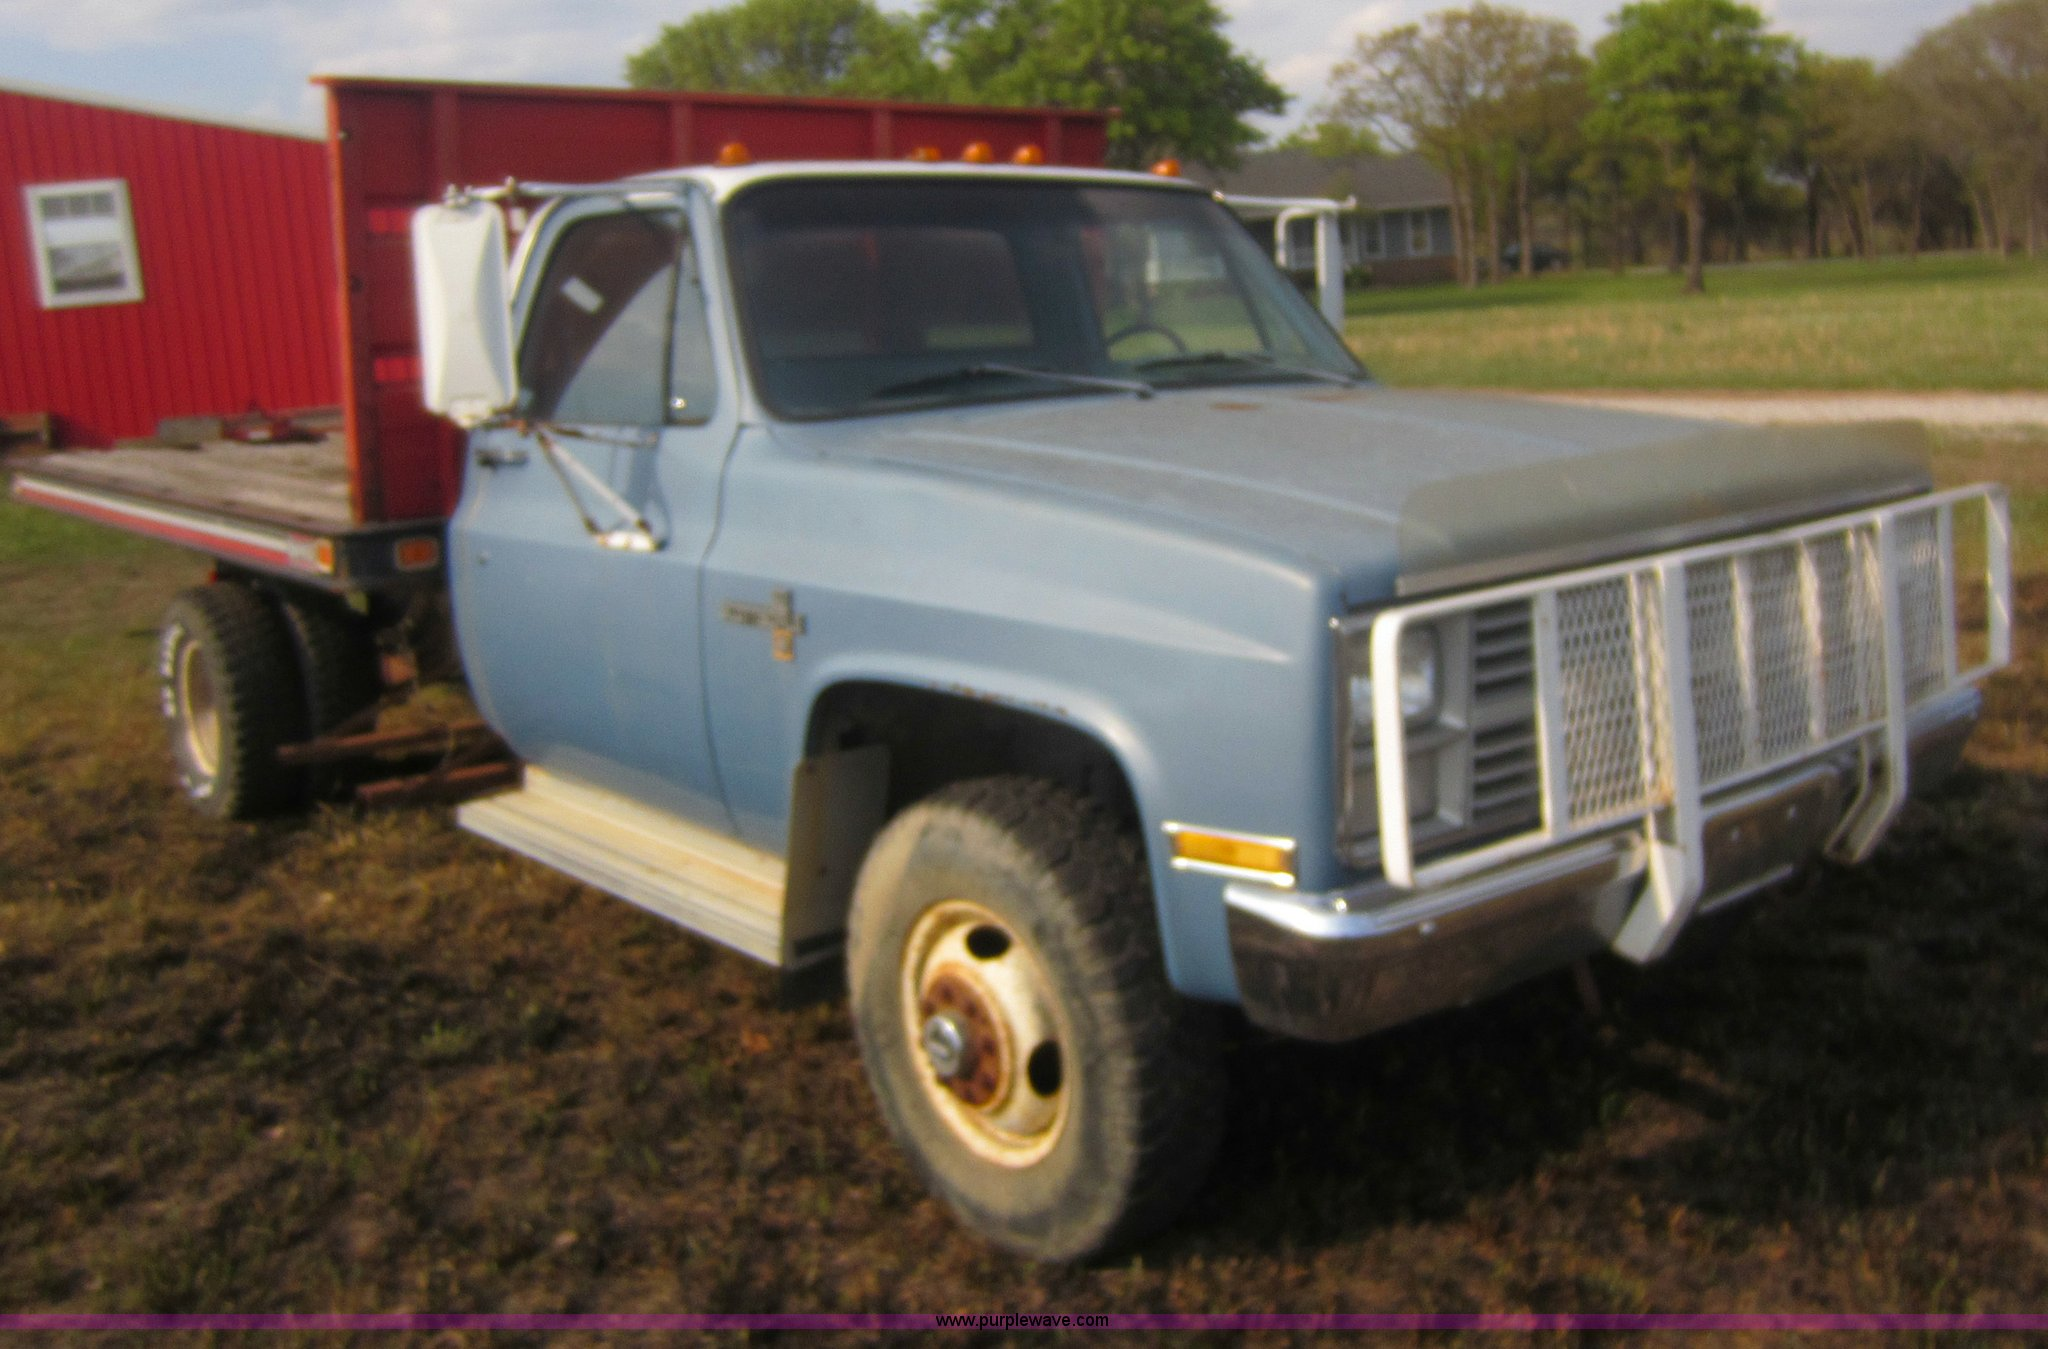 1983 chevrolet k30 flatbed truck full size in new window